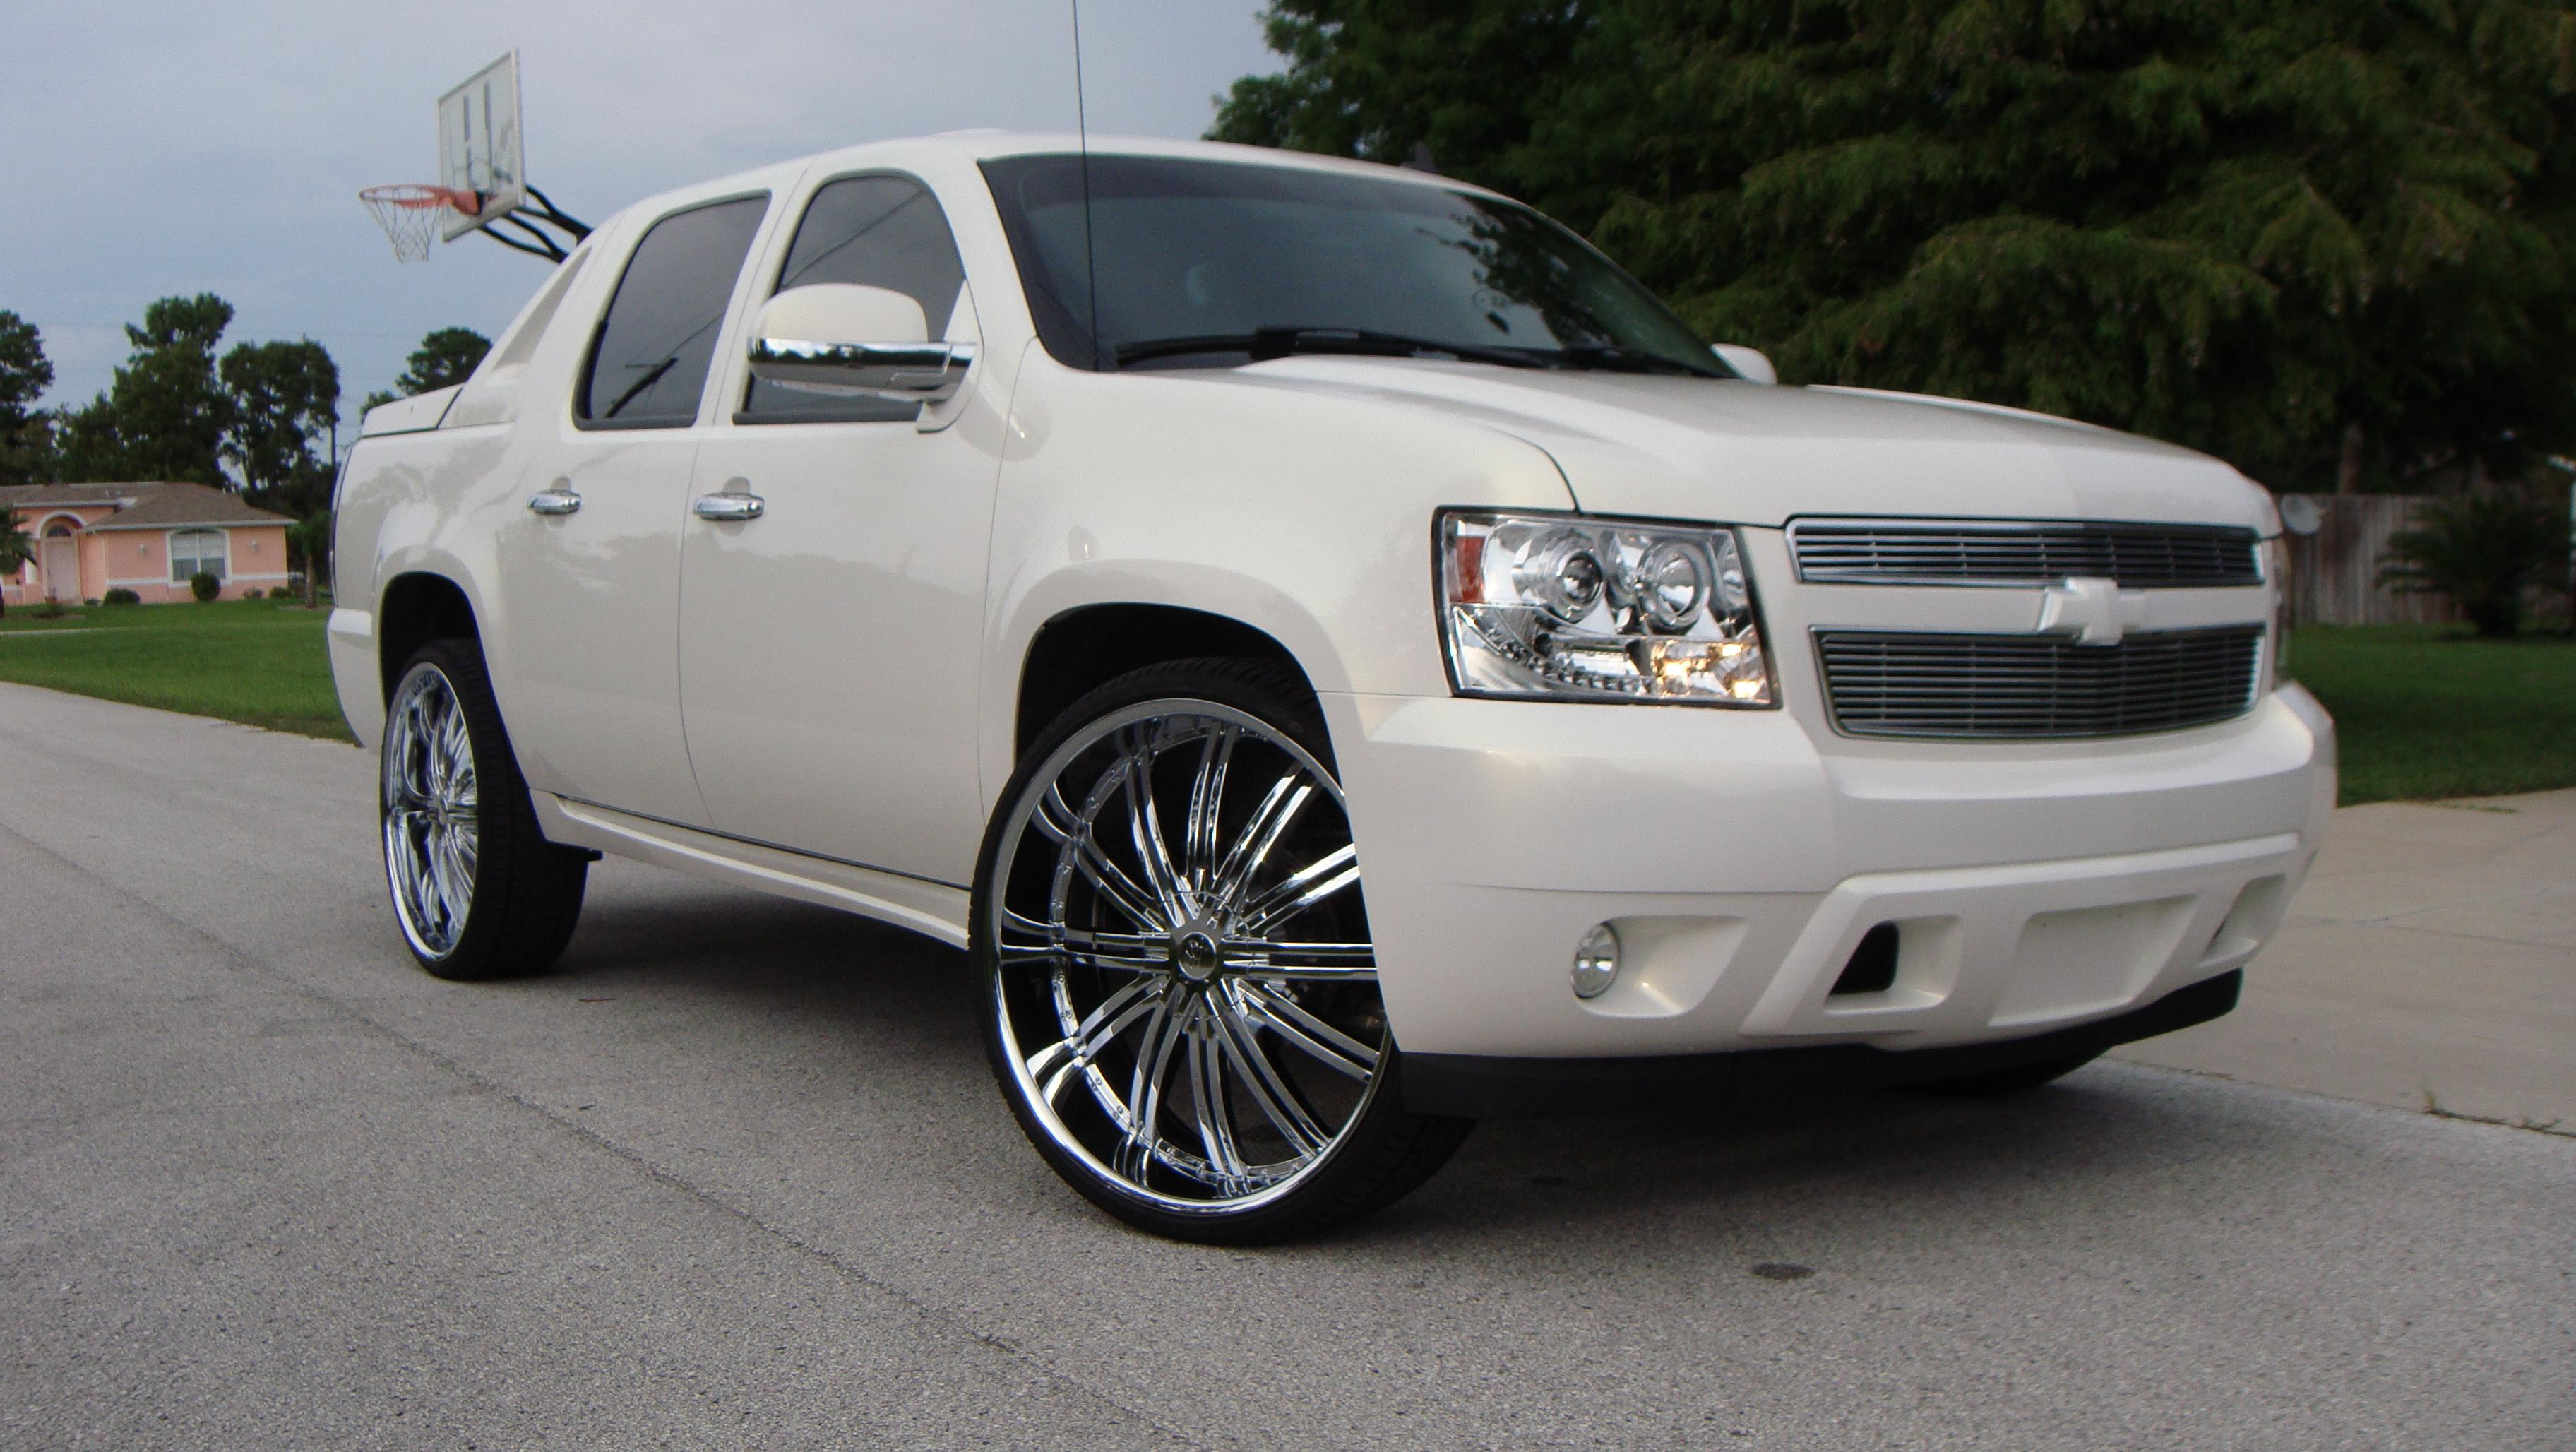 2008 Chevrolet Avalanche also 2010 Z4 gt3 also 1973 Cadillac Coupe Deville together with Marquez Design 67 72 Gm Truck Side Marker Lenses as well Sedan. on cadillac deville accessories